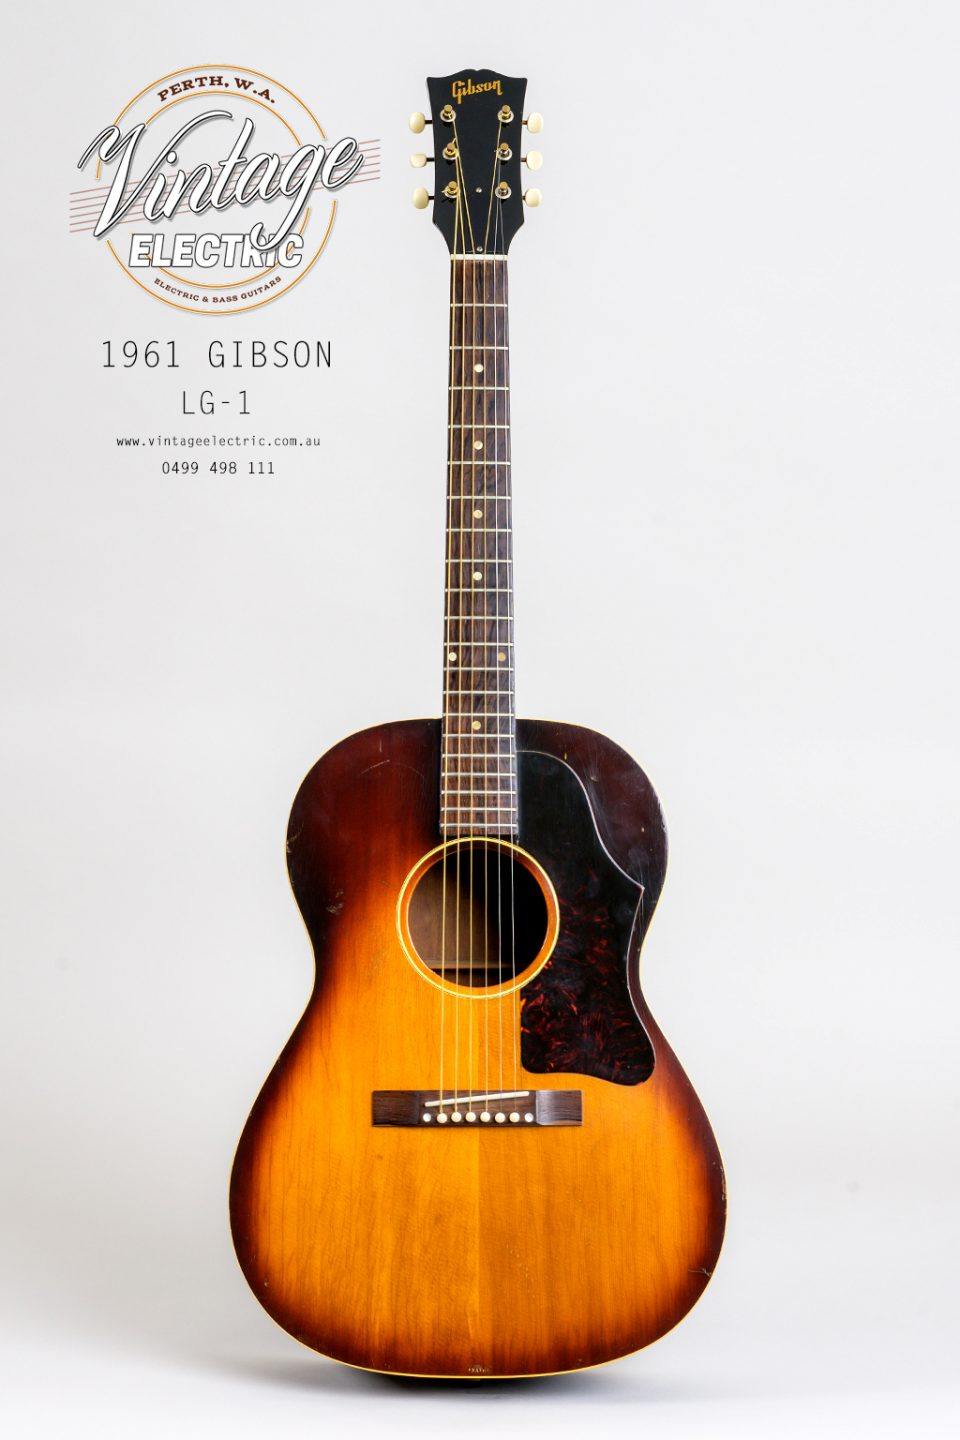 1961 Gibson LG1 Acoustic Guitar